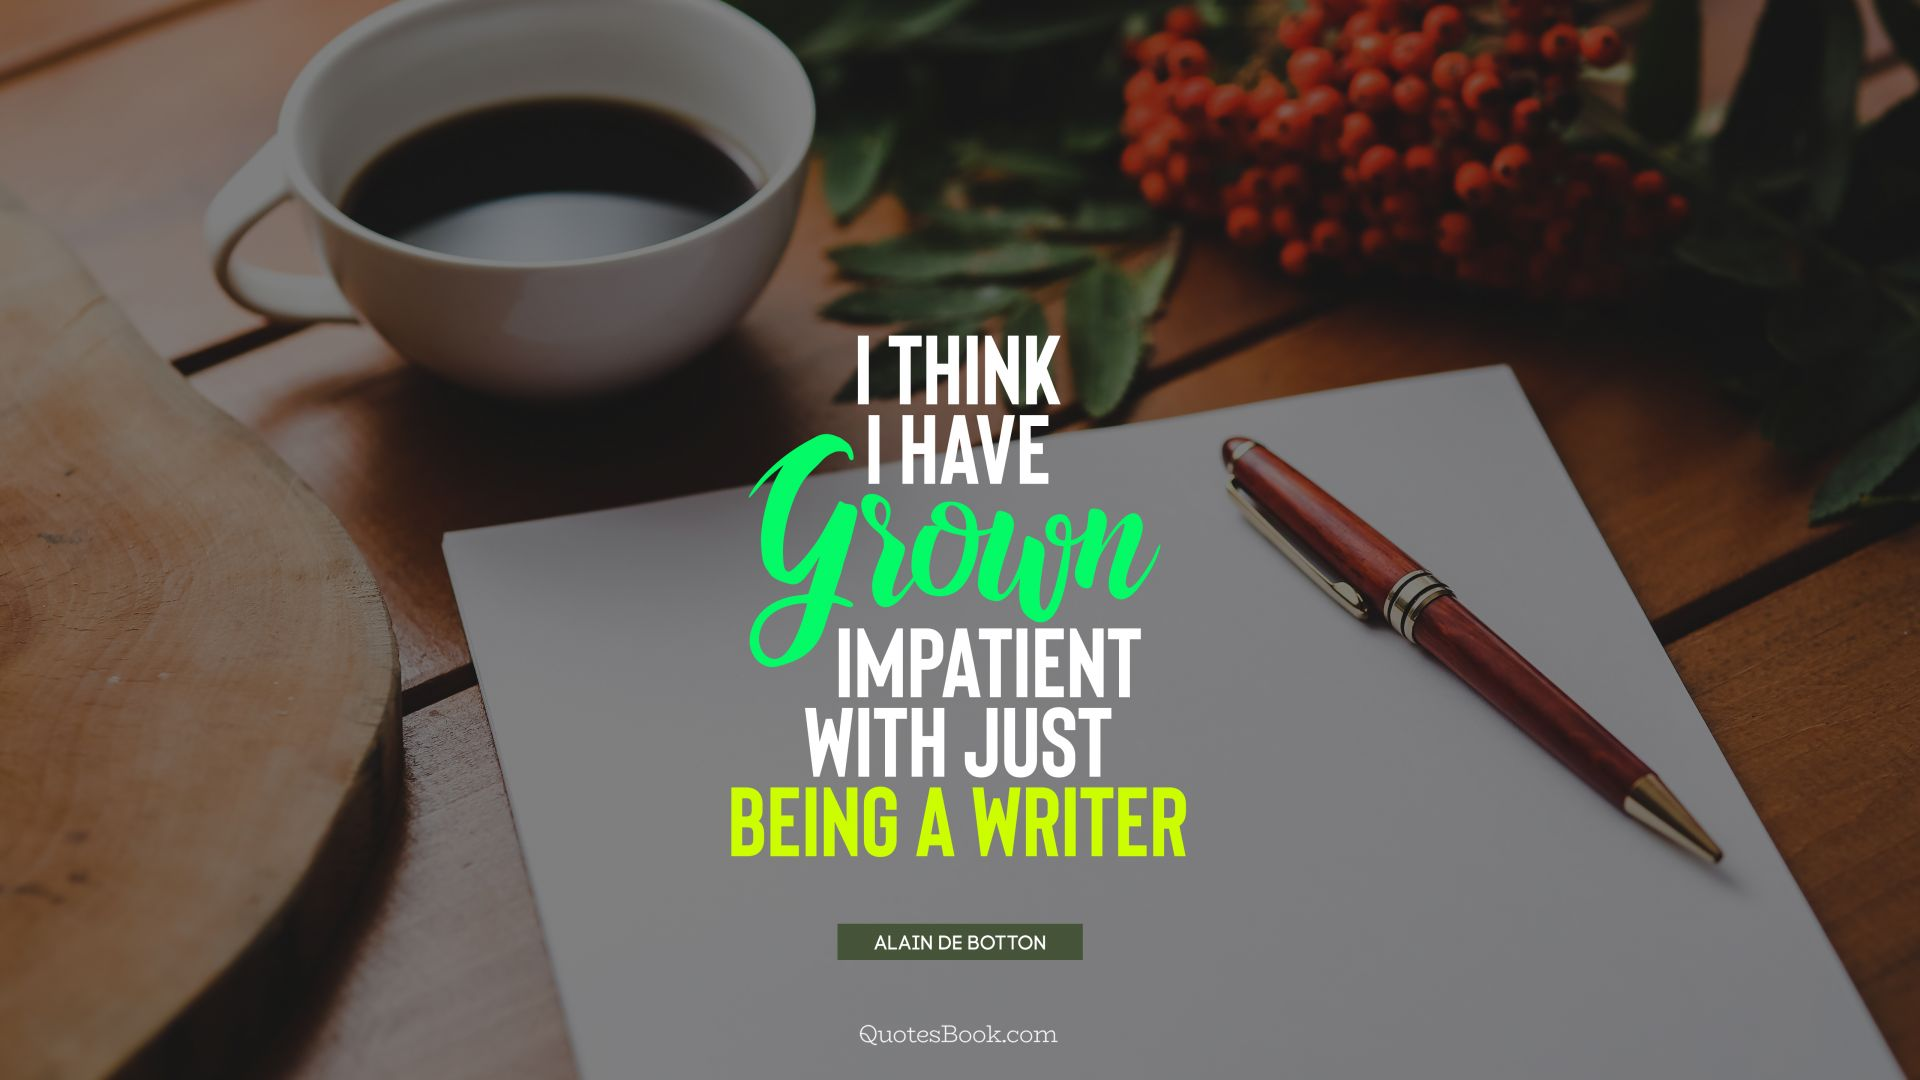 I think I have grown impatient with just being a writer. - Quote by Alain de Botton